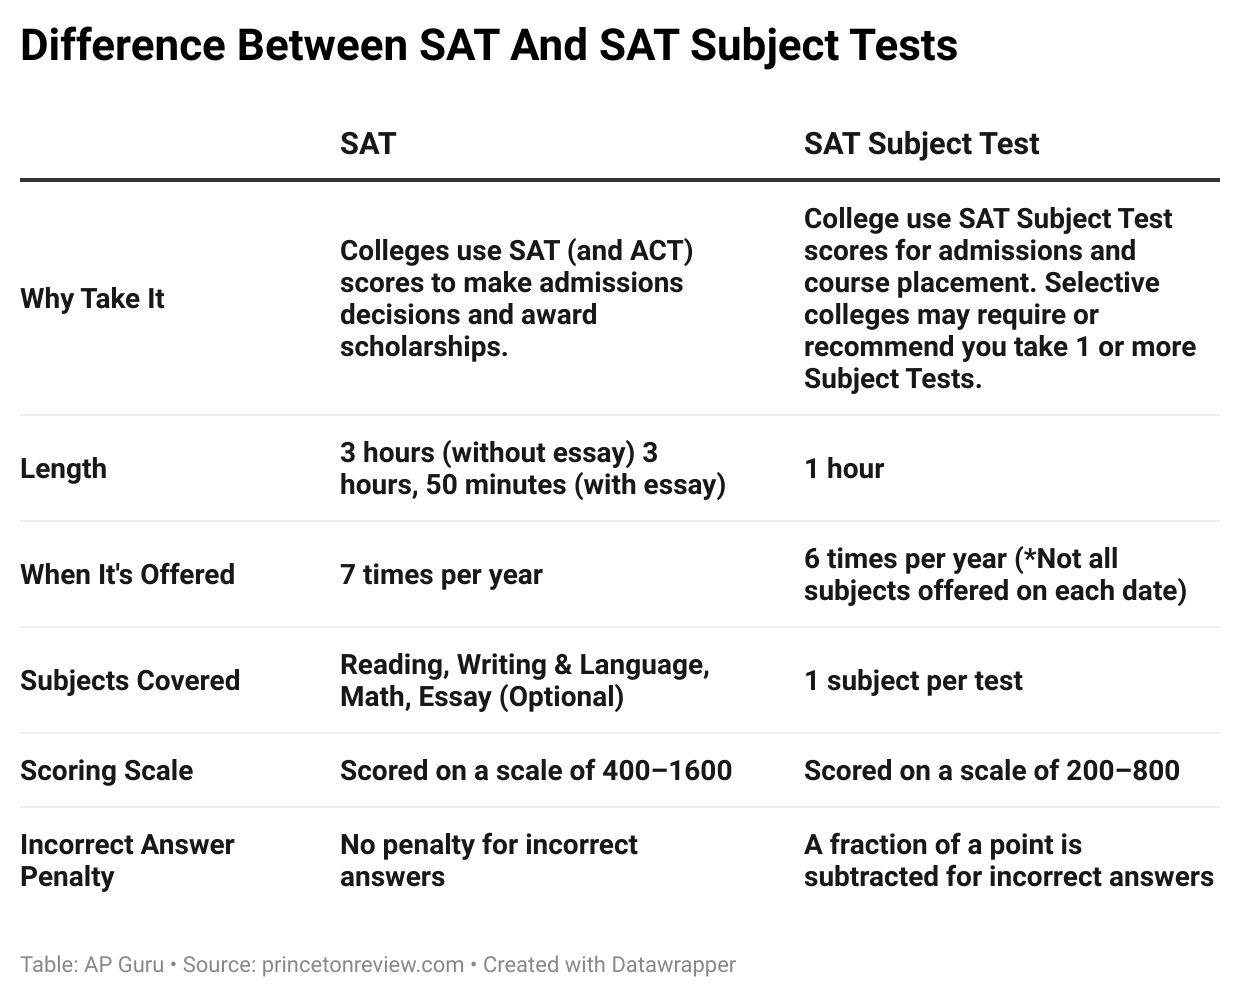 Difference between SAT And SAT Subject Tests